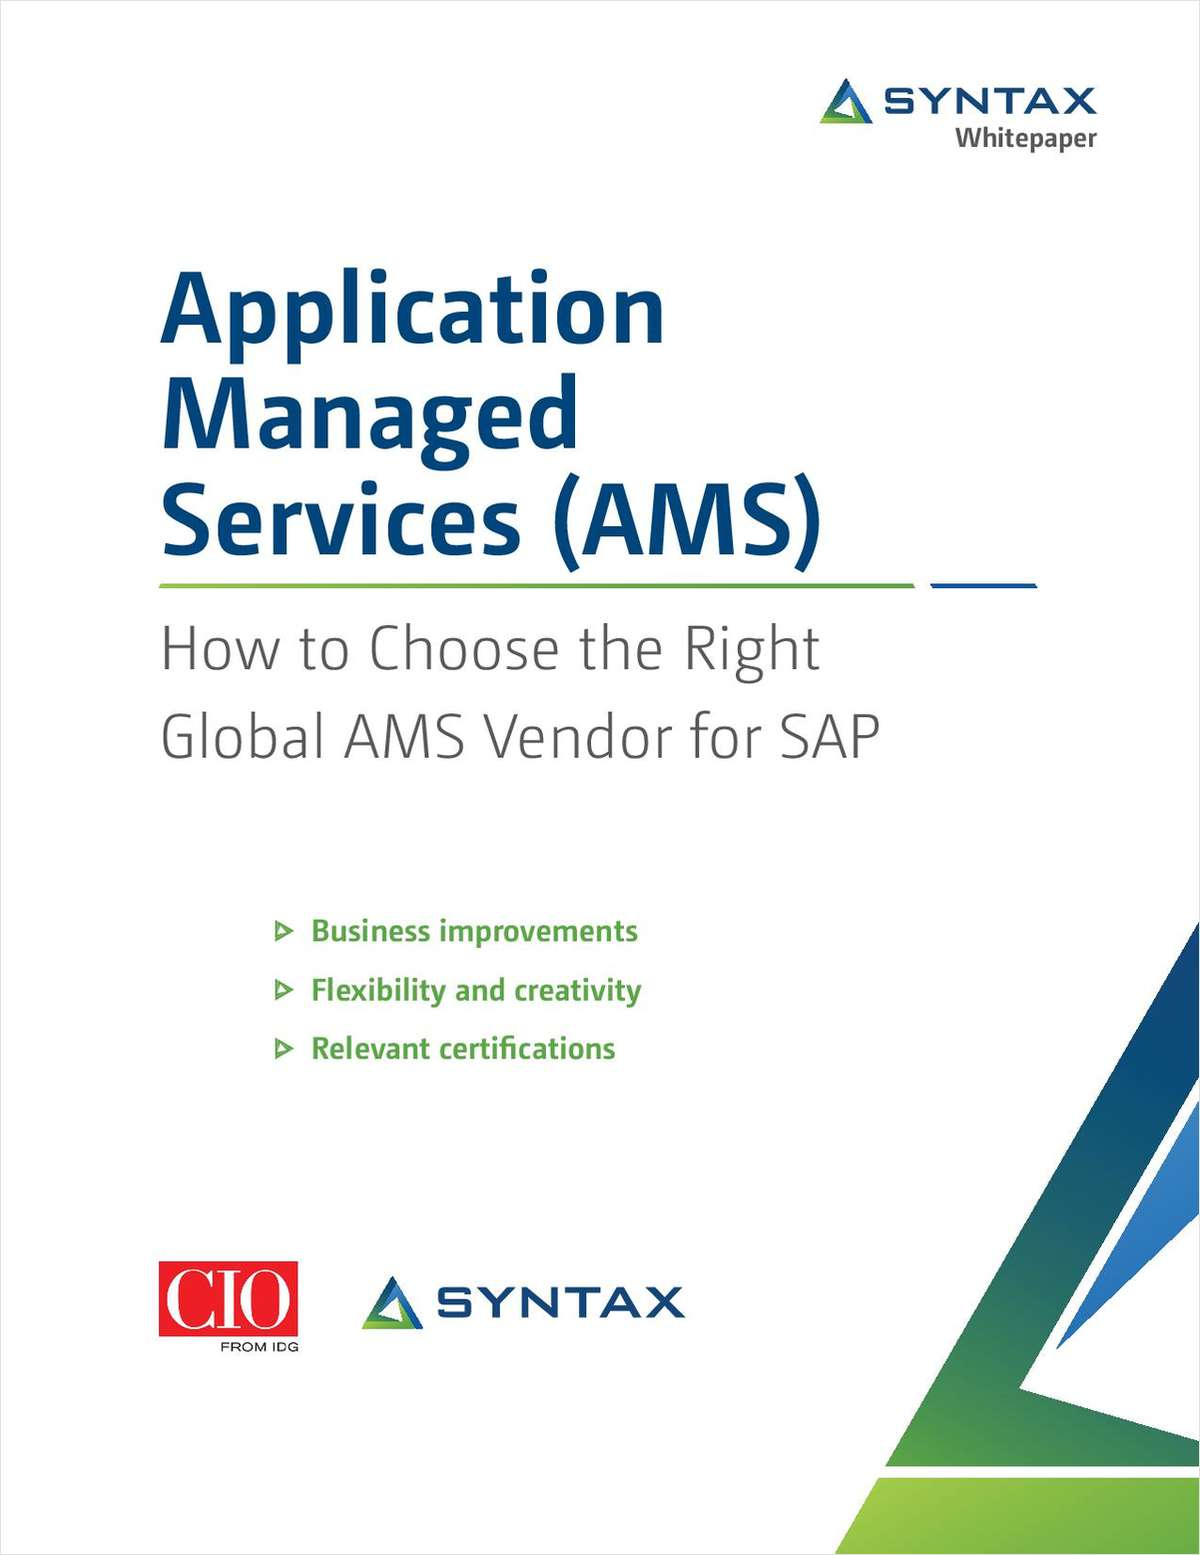 How to Choose the Right Global AMS Vendor for SAP